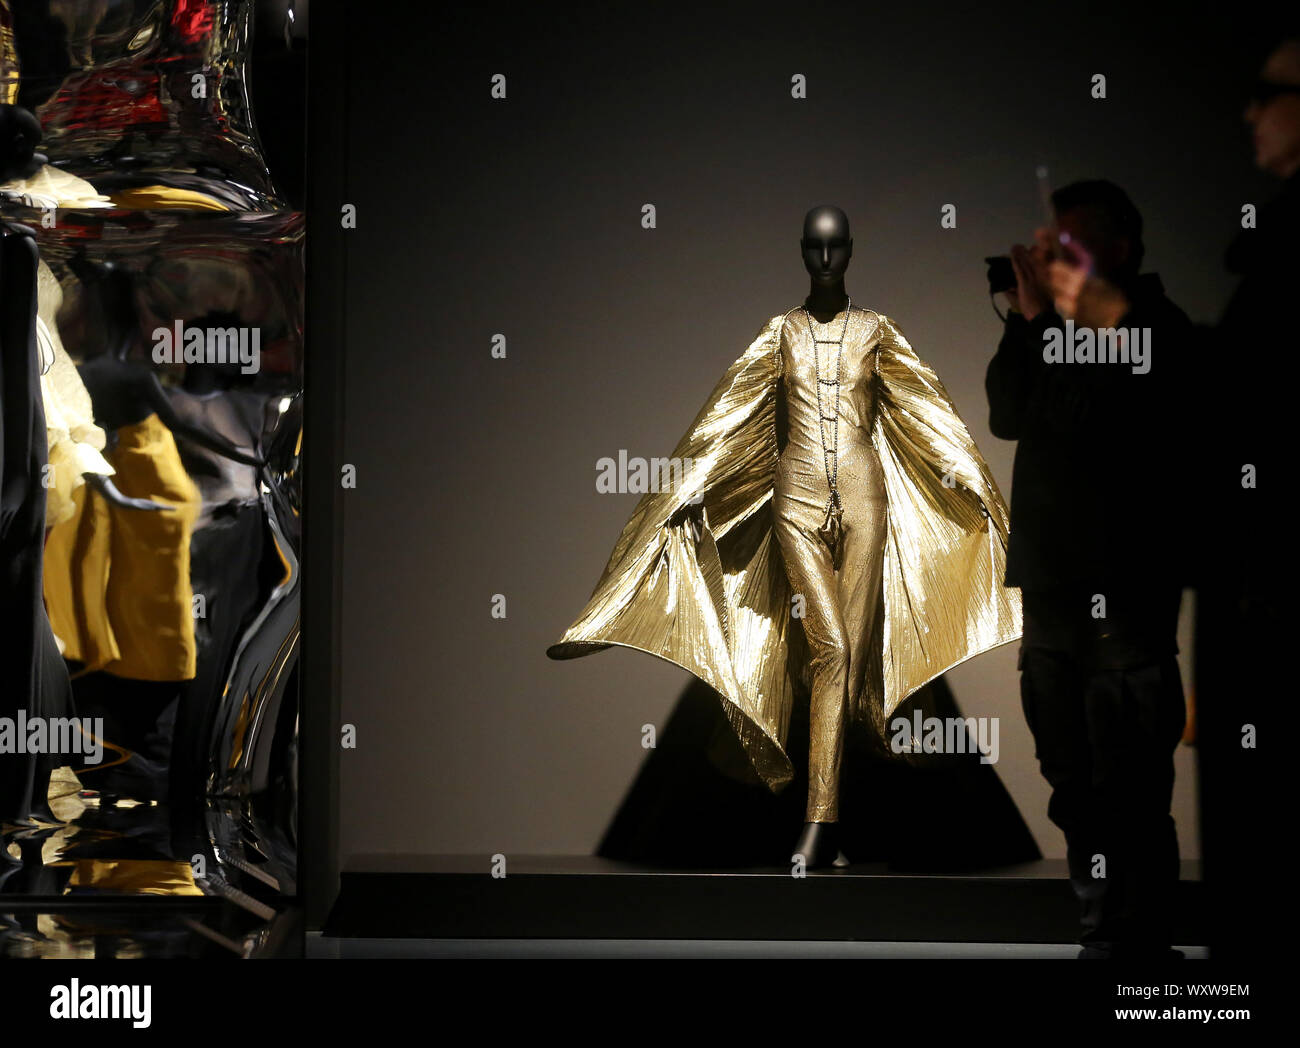 Avant Garde Fashion High Resolution Stock Photography And Images Alamy